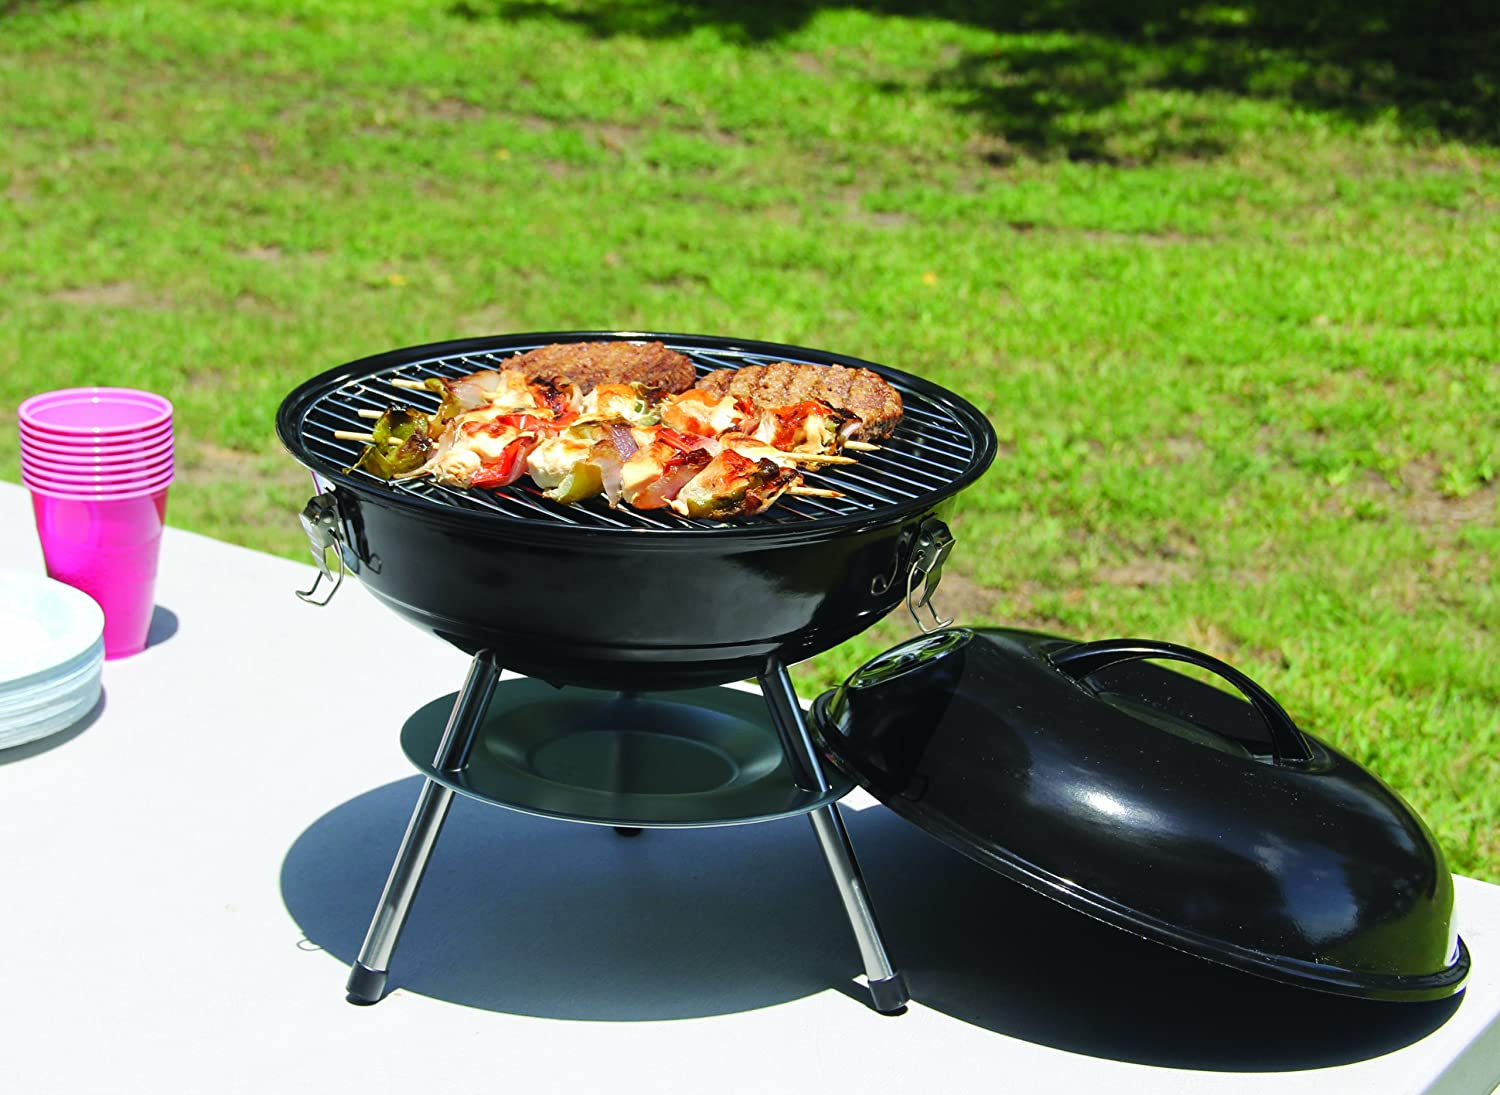 Image result for Small Charcoal Grill